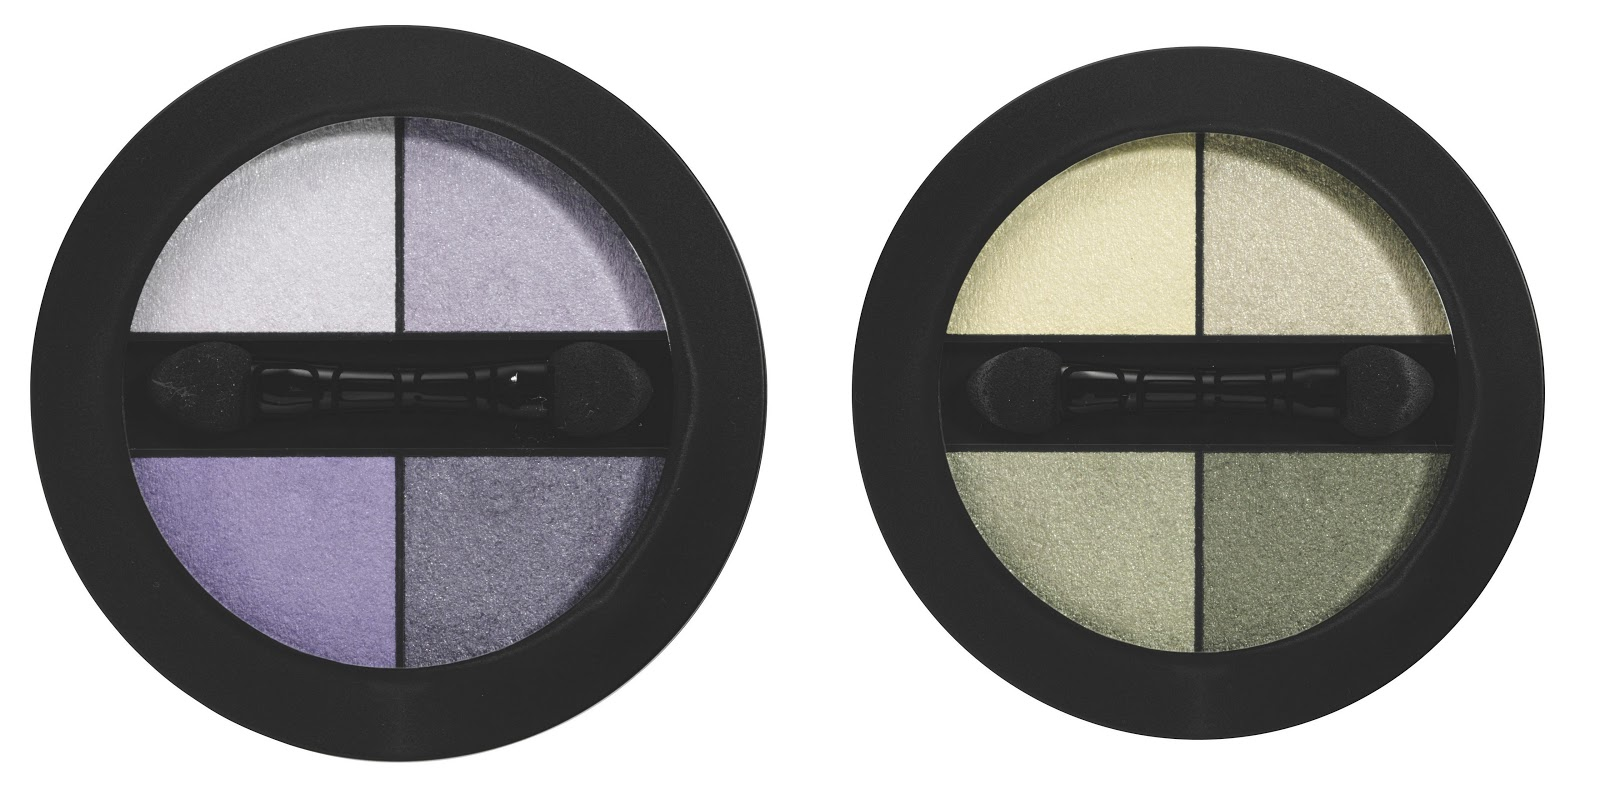 Gosh Quattro Eye Shadow